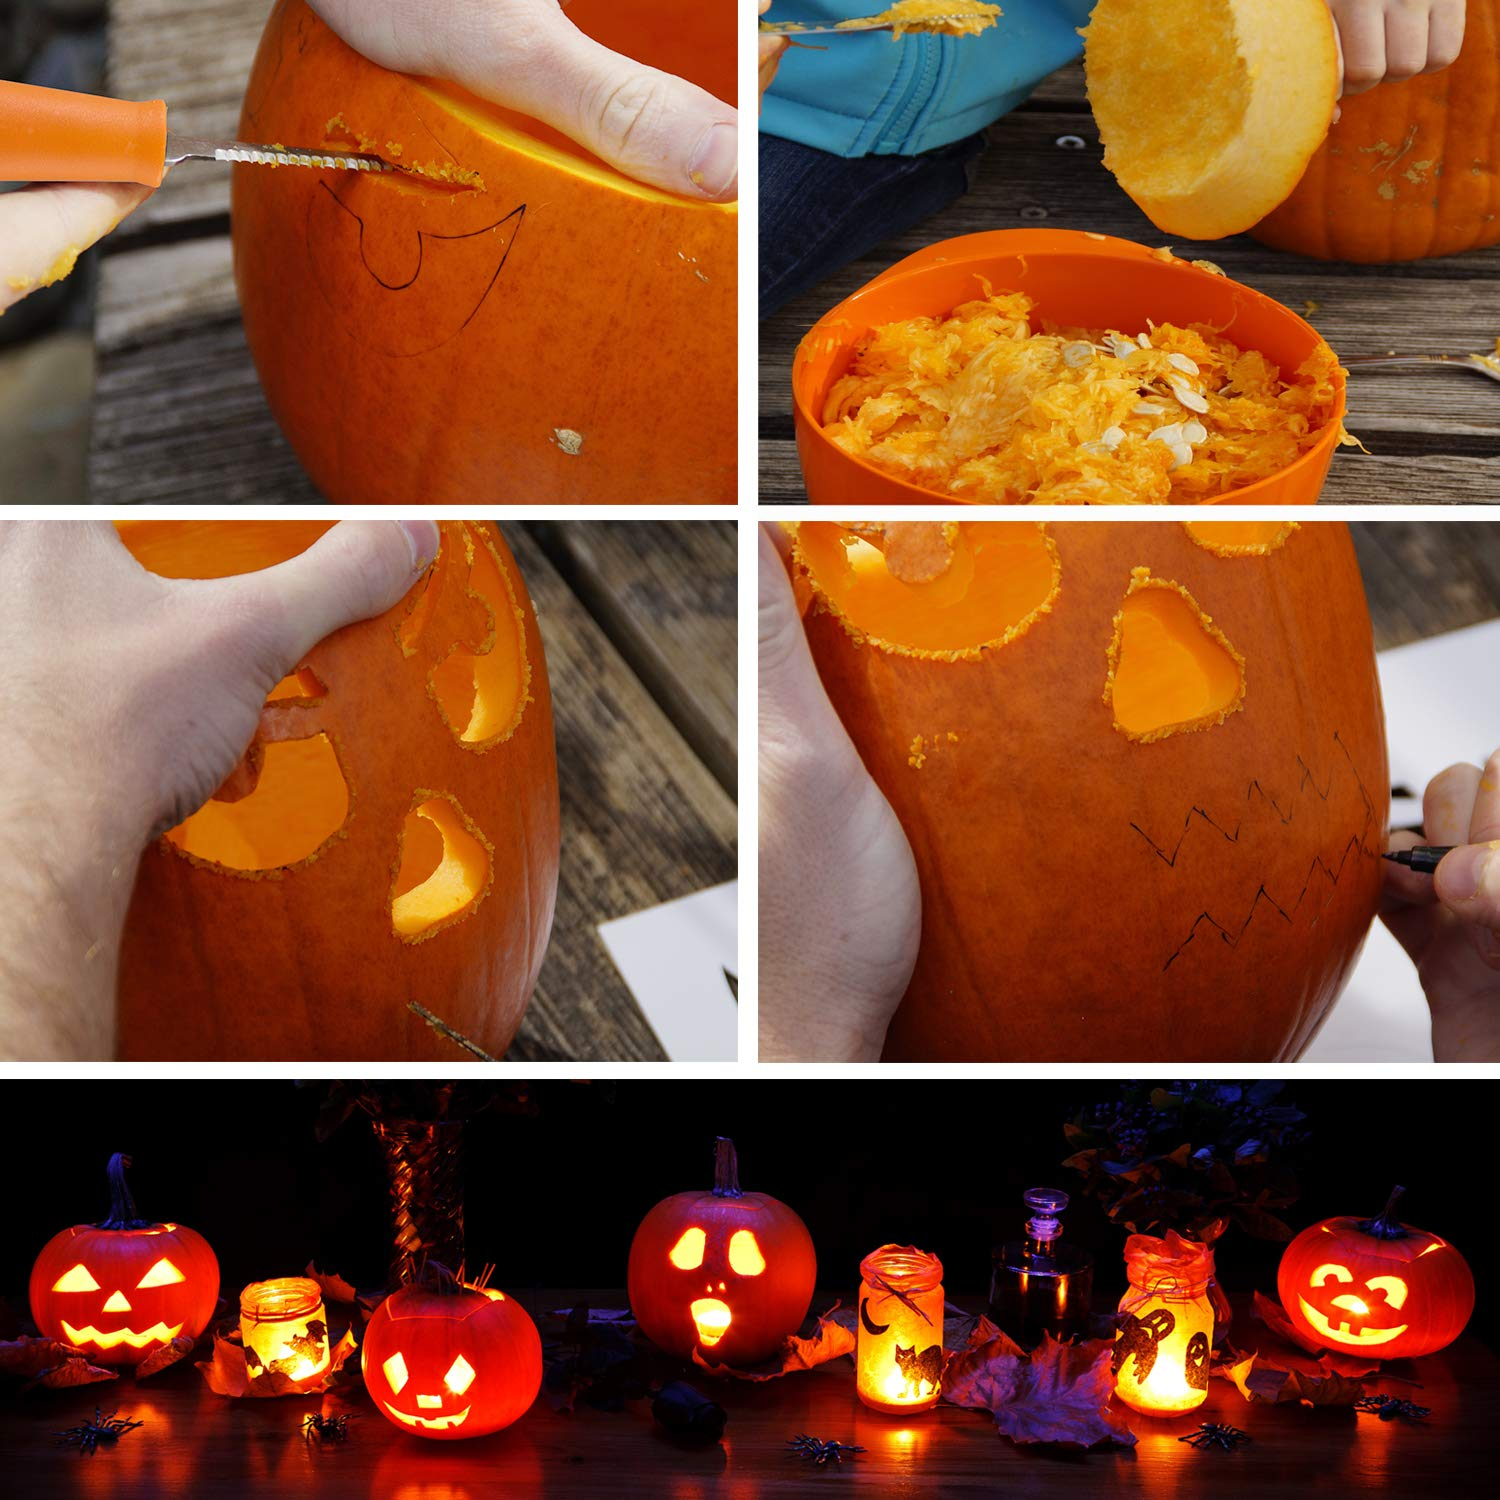 Pumpkin Carving Kit, 4 Pieces Heavy Duty Stainless Steel Pumpkin Carving Tools with 10 Carving Stencils, Ergonomic Design, Perfect for Adult and Children Halloween Decoration by Fantech (Image #2)